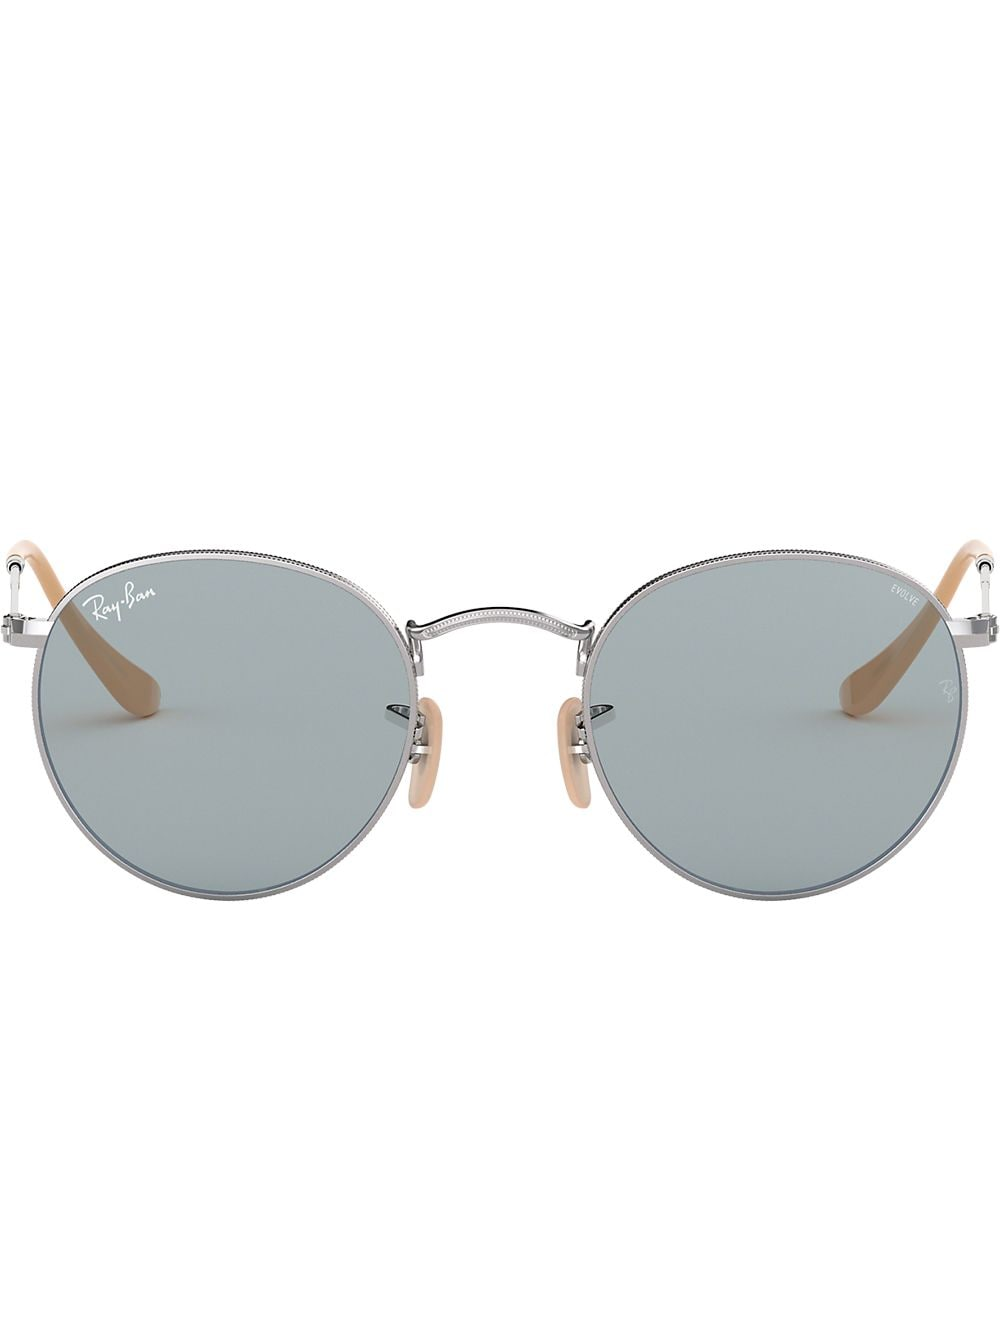 3a5584eb10d Ray-Ban  Round Metal Classic  Sonnenbrille - Silber von Ray-Ban